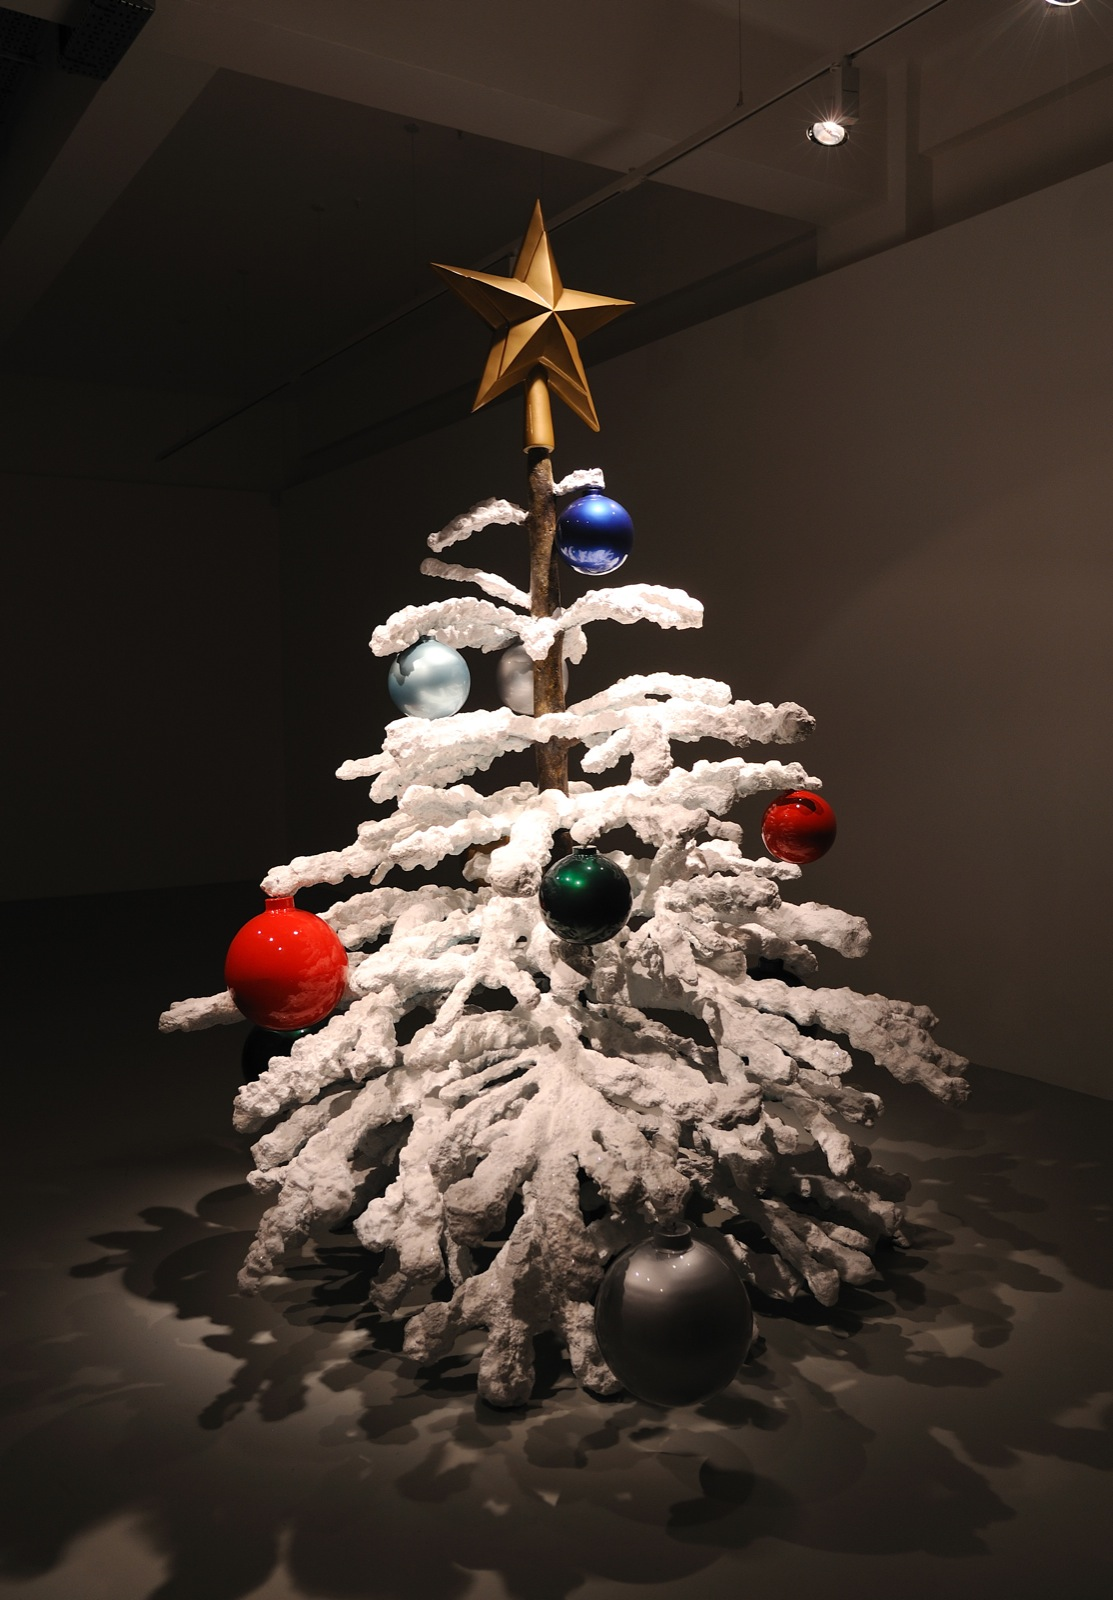 Philippe Parreno, Fraught Times - For Eleven Months of the Year it's an Artwork and in December it's Christmas (October), 2008, cast aluminium, paint, musical score, 272 x 205 cm